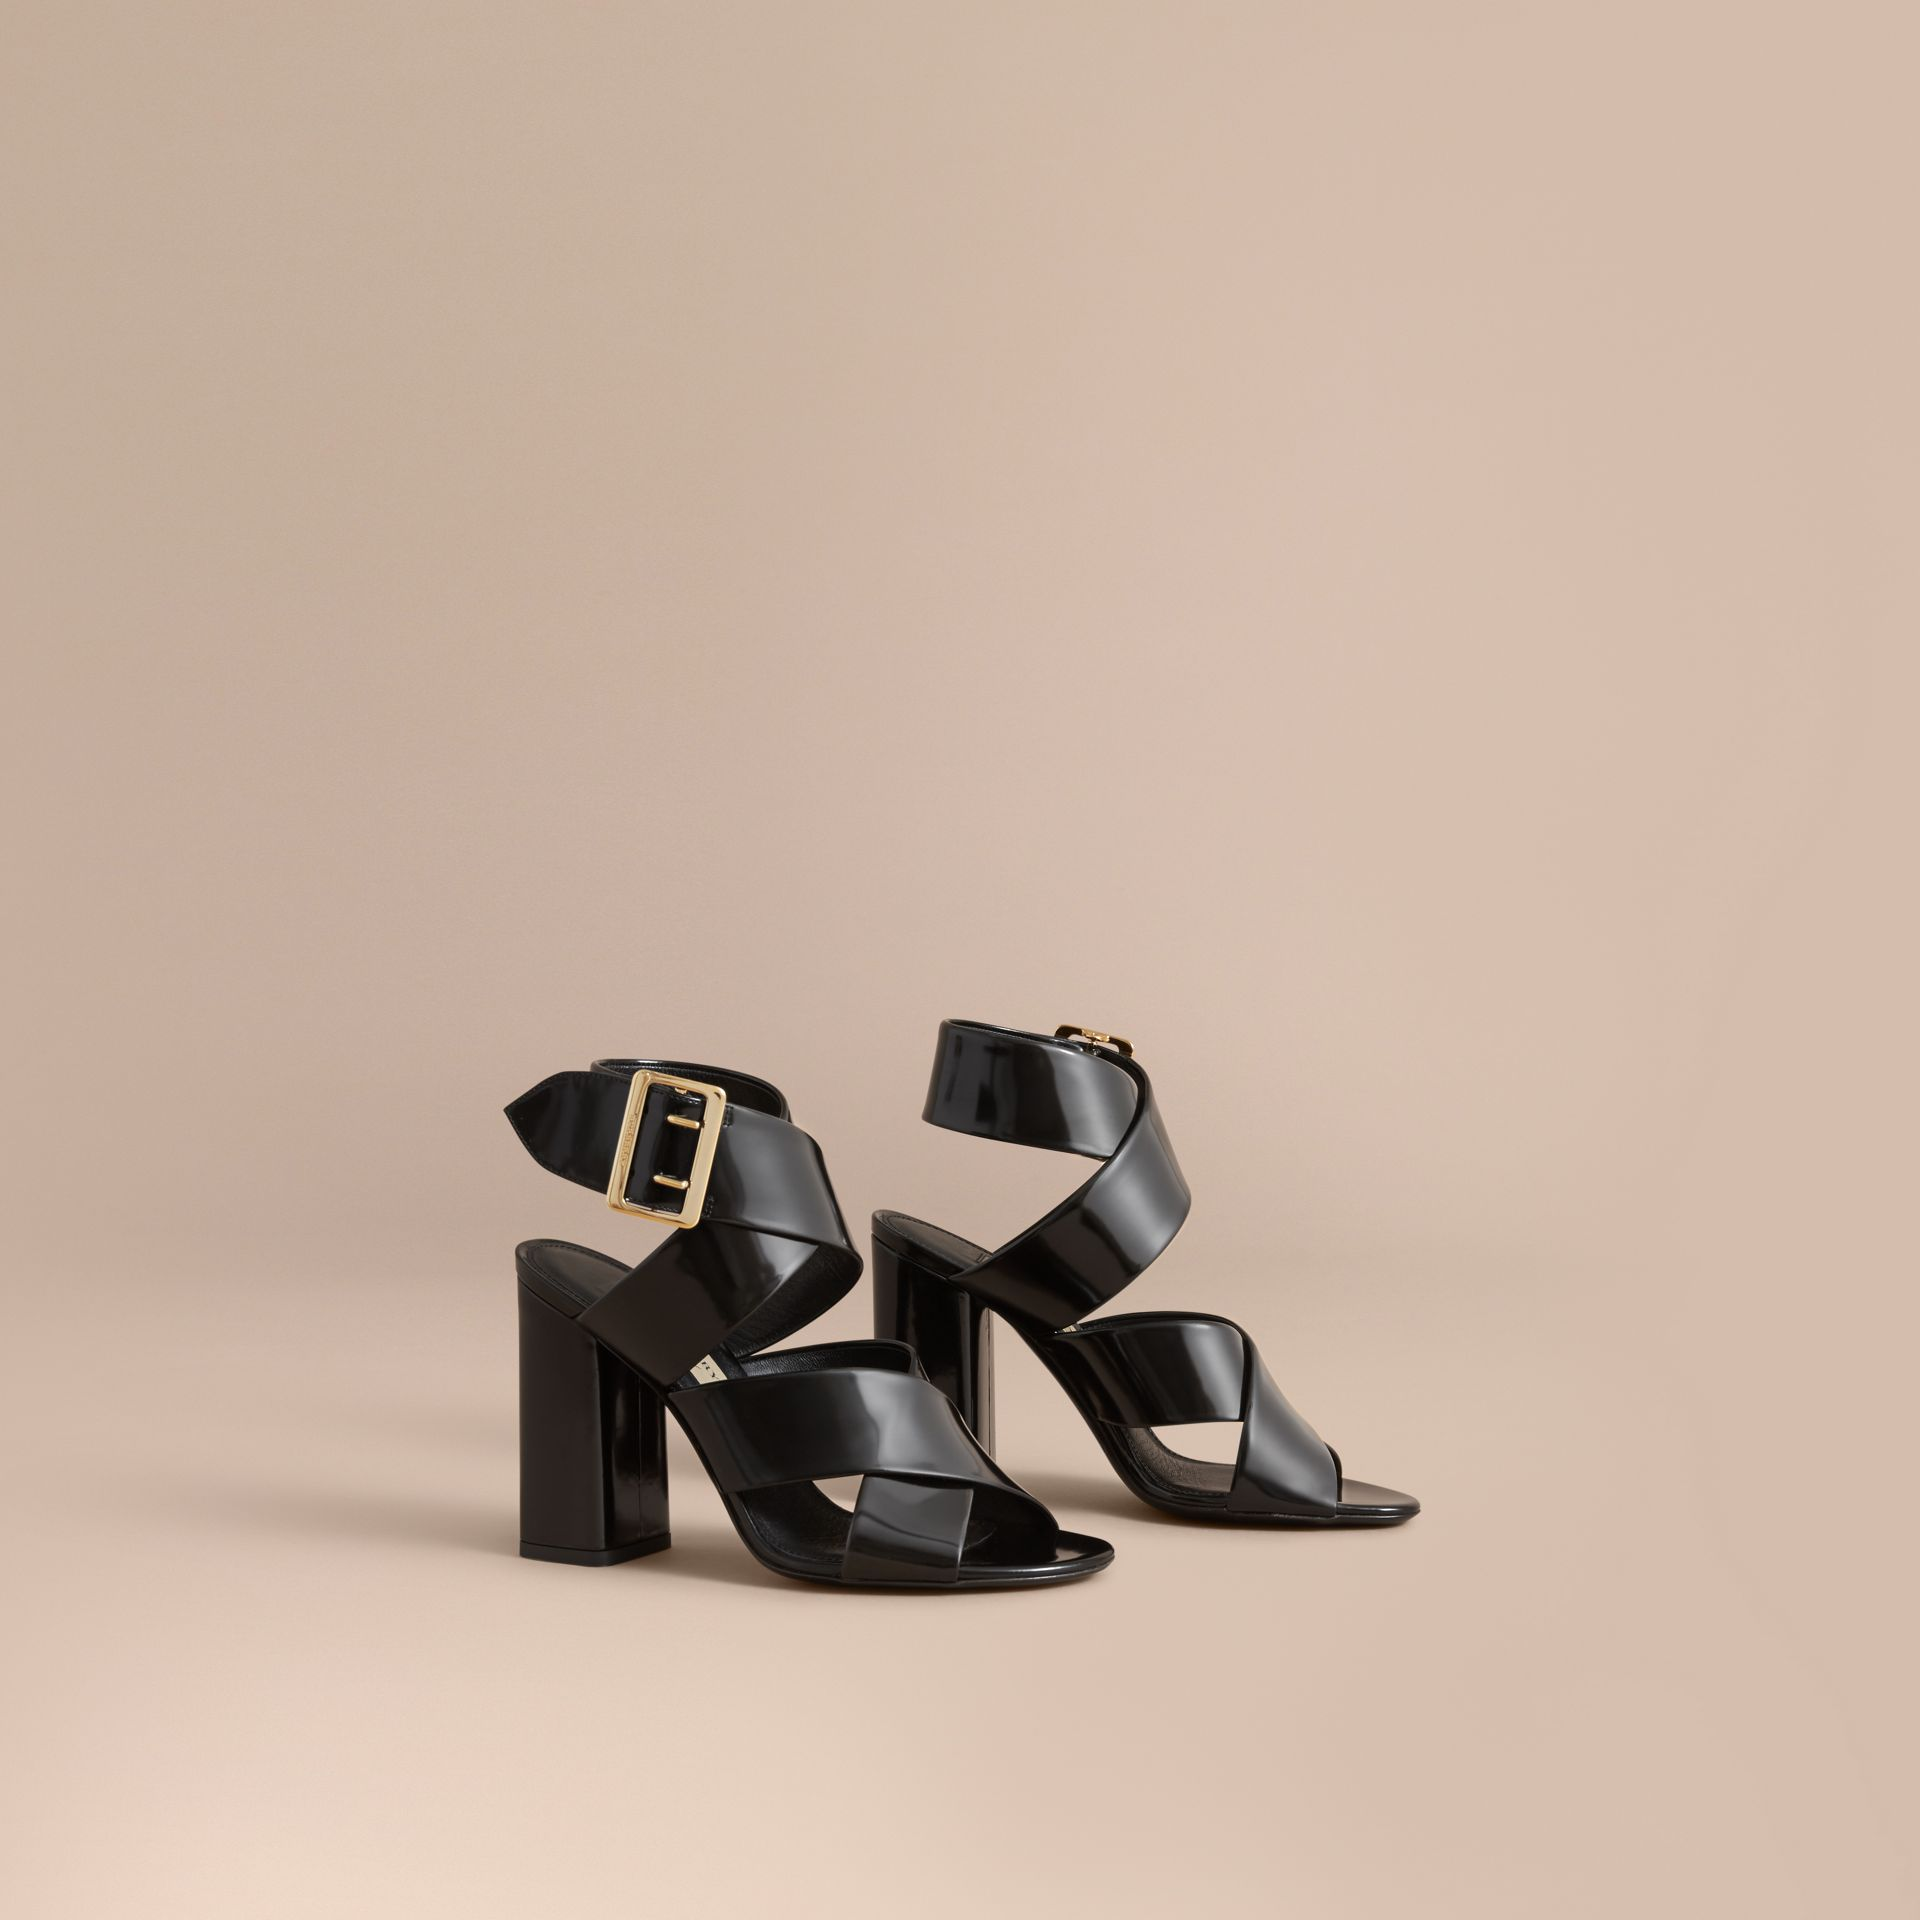 Buckle Detail Patent Leather Sandals - Women | Burberry - gallery image 1